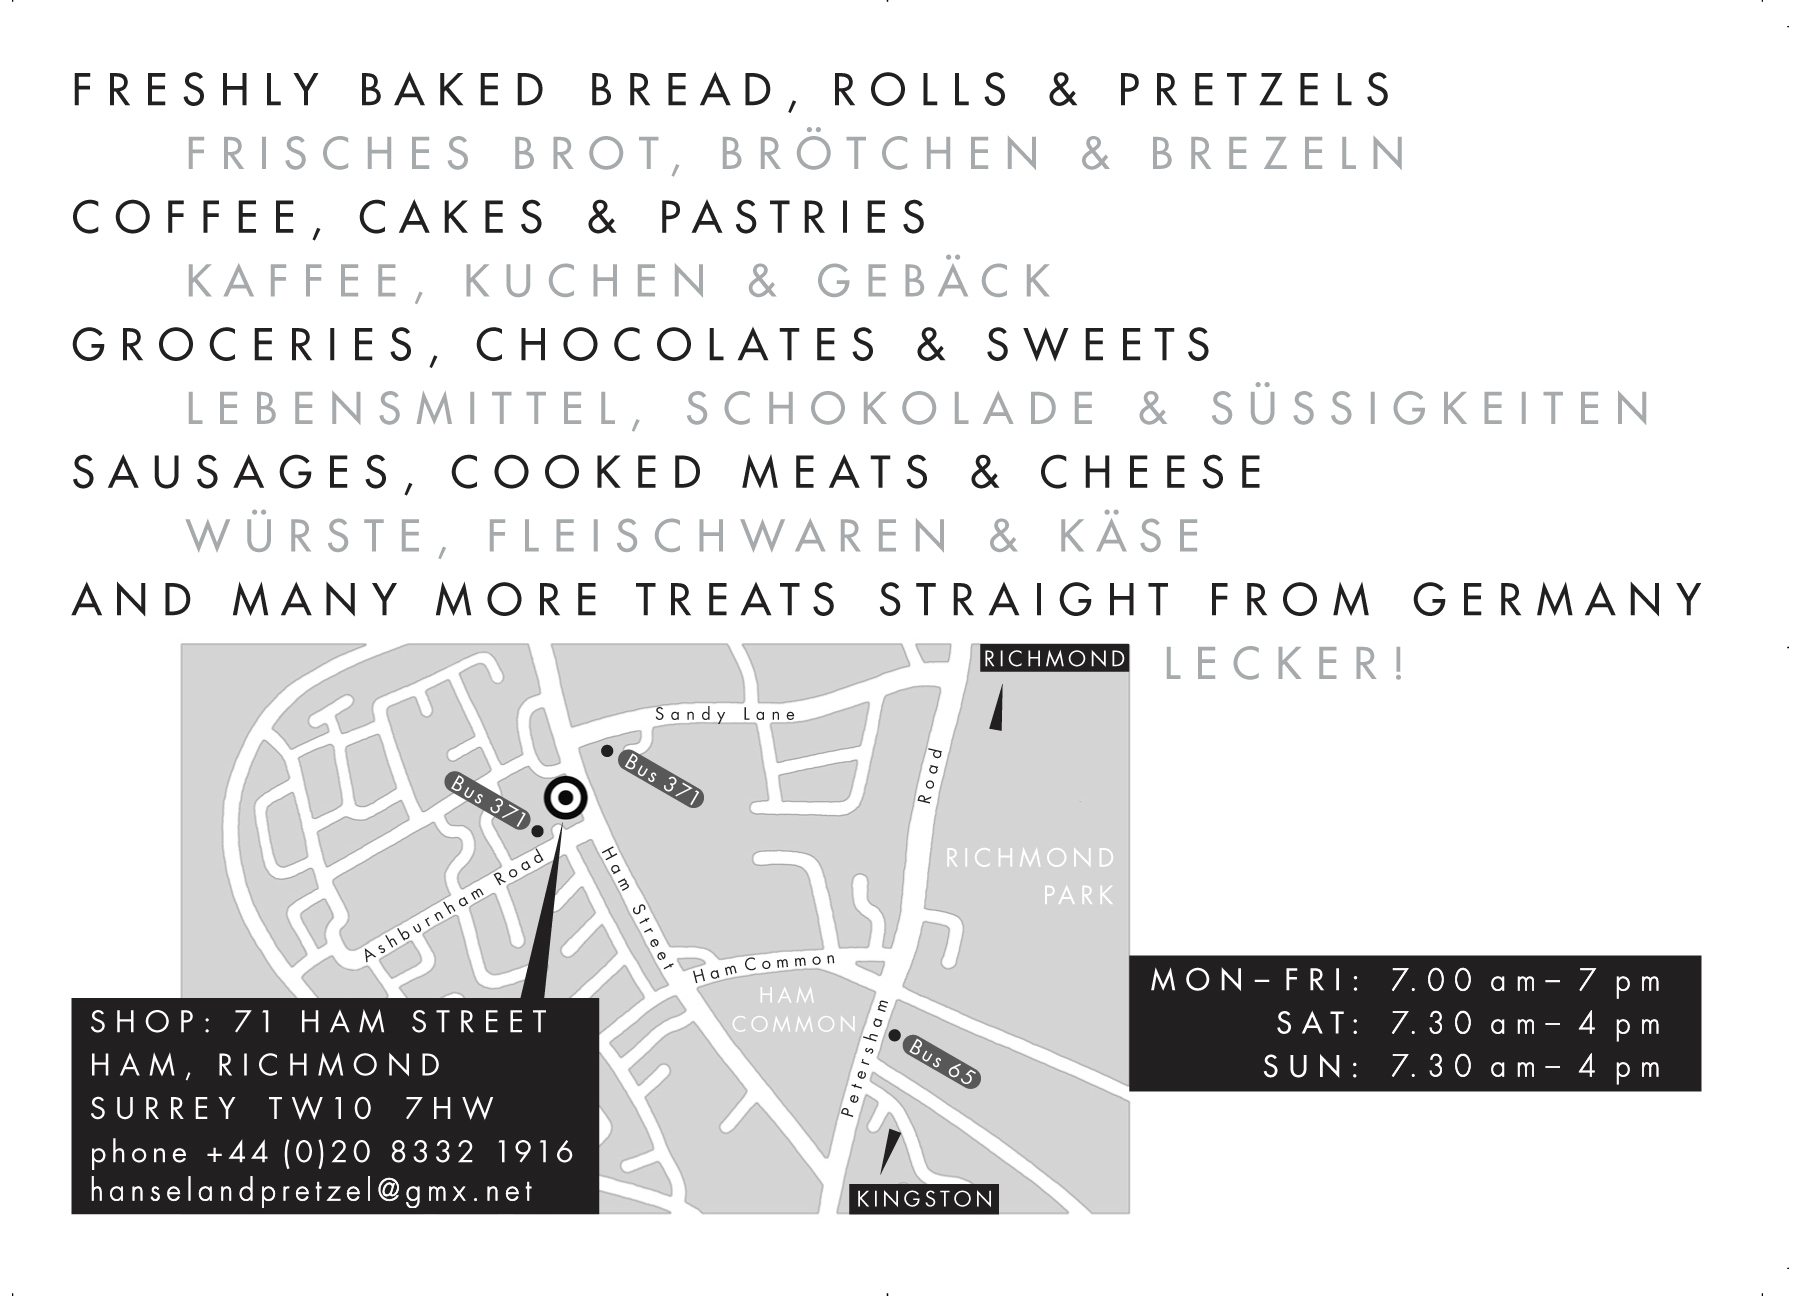 Freshly baked bread, rolls and pretzels. Coffee, cakes and pastries. Groceries, chocolates and sweets. Sausages, cooked meats and cheese. And many more treats straight from Germany. Hansel and Pretzel, 71 Ham Street, Ham - Richmond, TW10 7HW, Tel 020 8332 1916. Open Mon - Fri 7.00 - 7.00, Sat & Sun 7.30 - 4.00